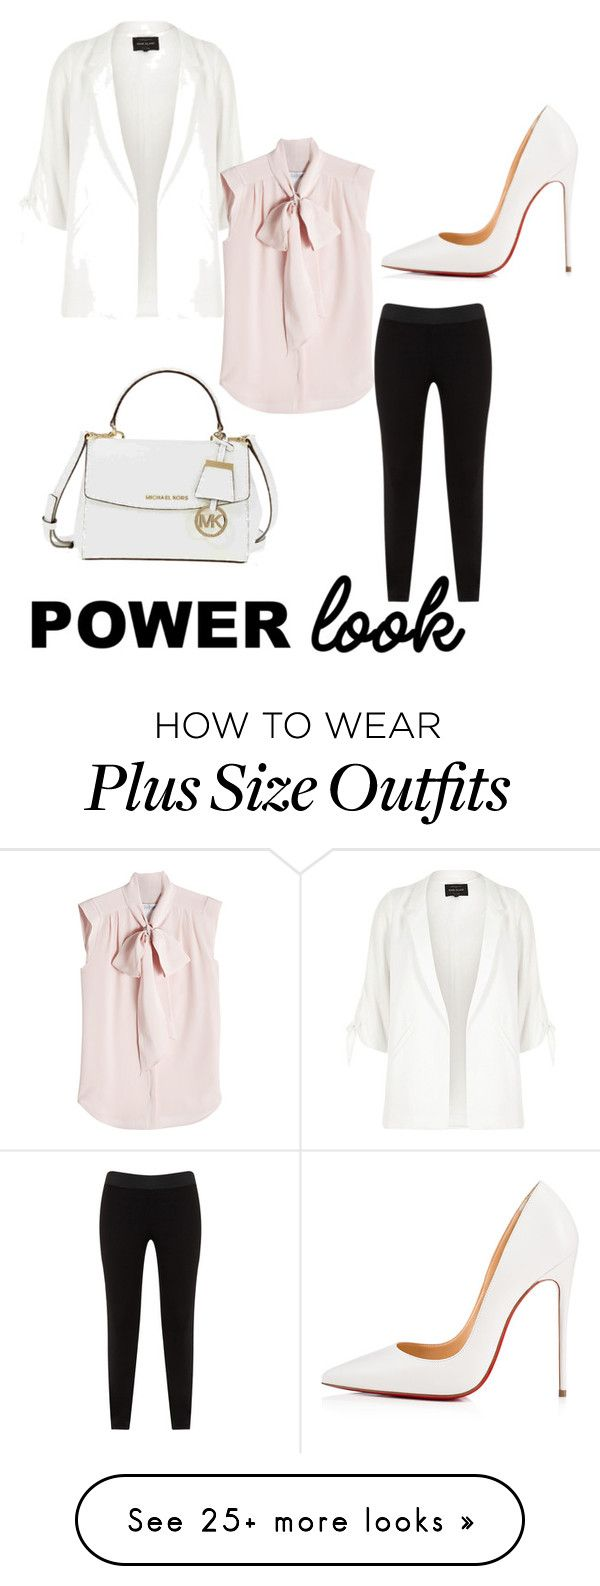 """Outfit 15 <3 (my power look contest entry)"" by haiitsjessica on Polyvore featuring River Island, MaxMara, JunaRose, Christian Louboutin and Michael Kors"